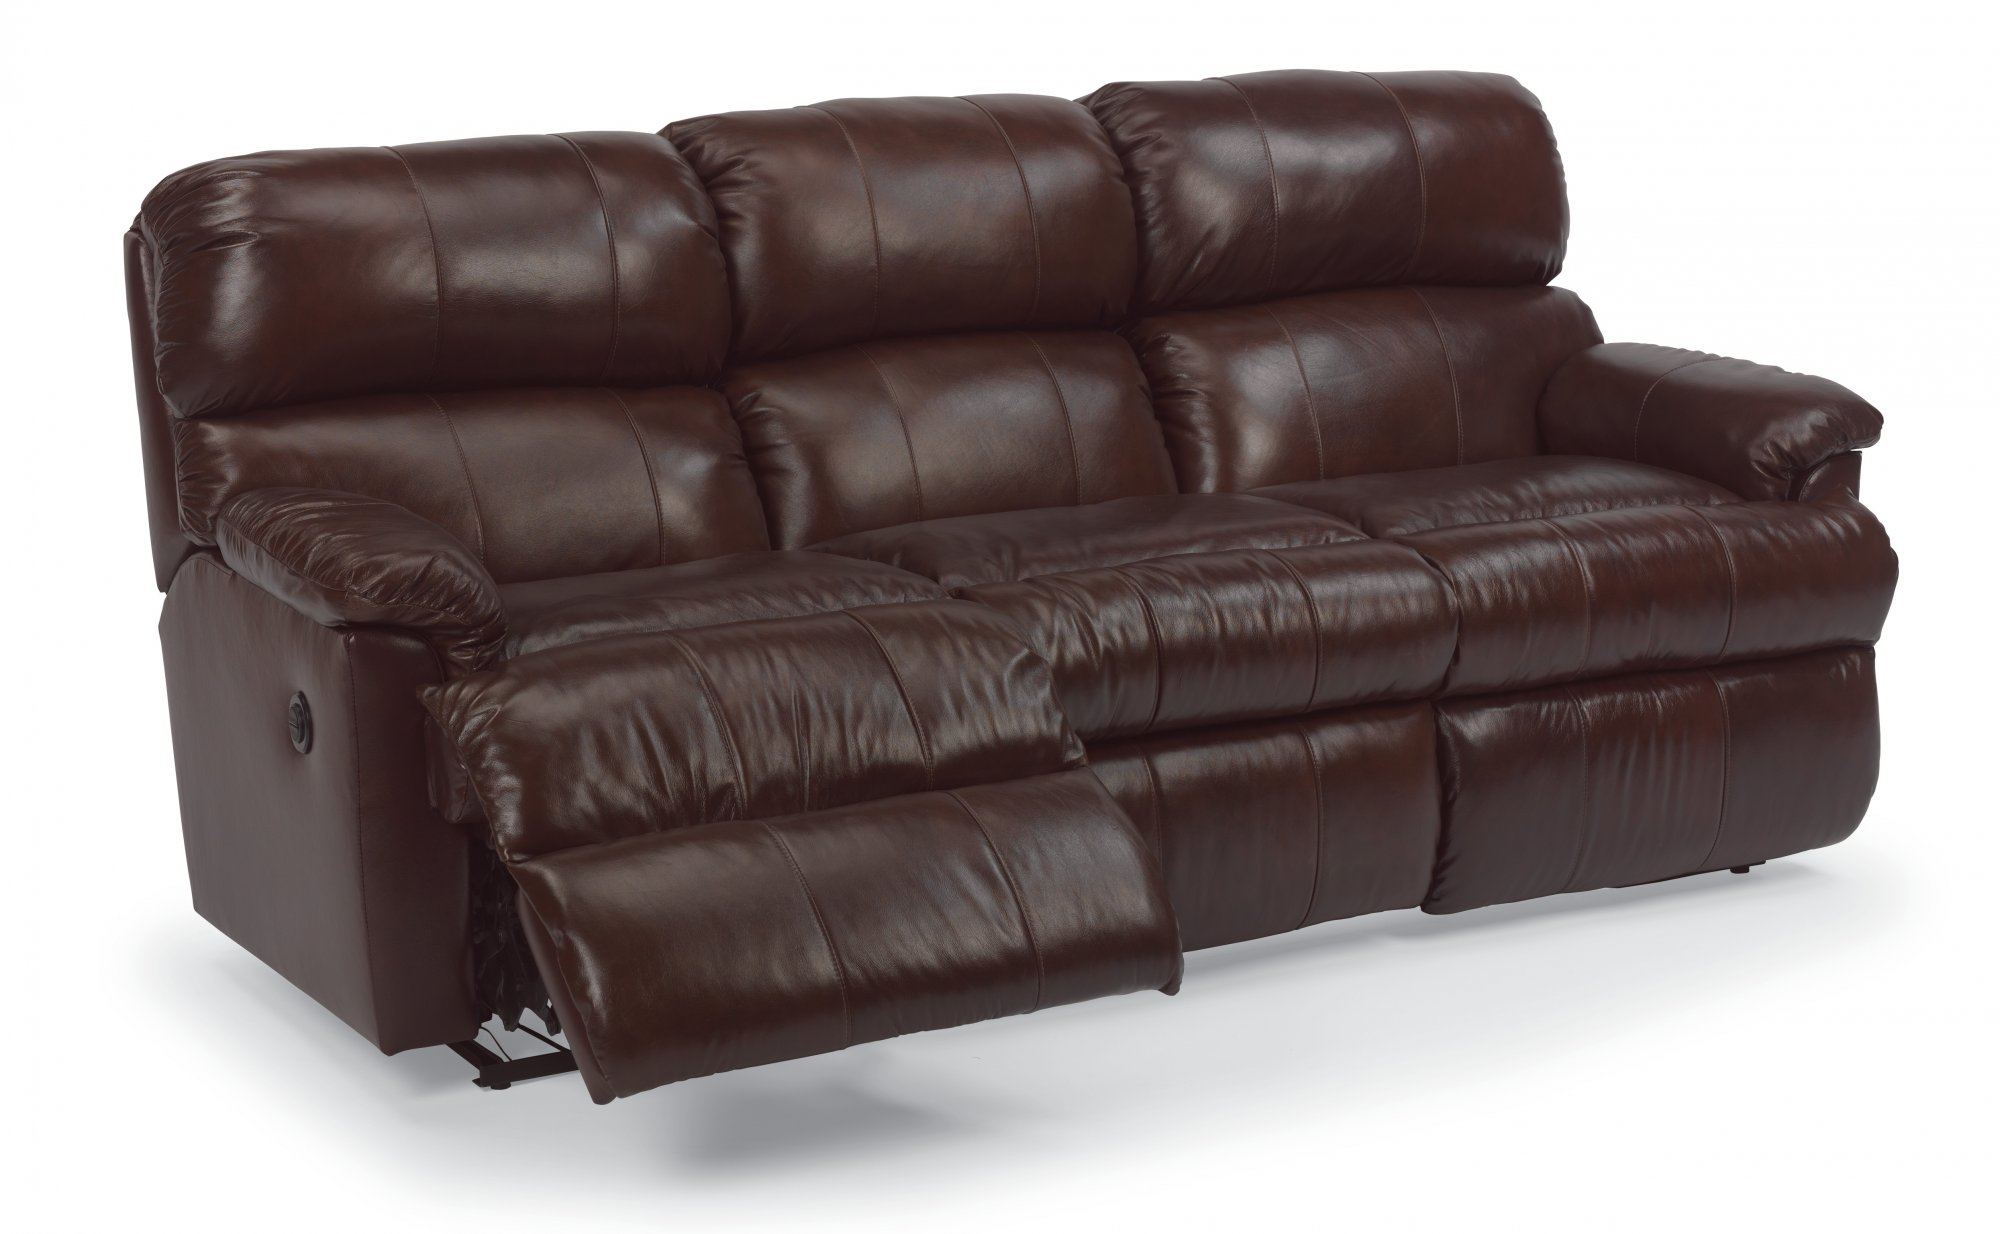 Phenomenal Flexsteel 3066 62M Chicago Leather Power Reclining Sofa Caraccident5 Cool Chair Designs And Ideas Caraccident5Info